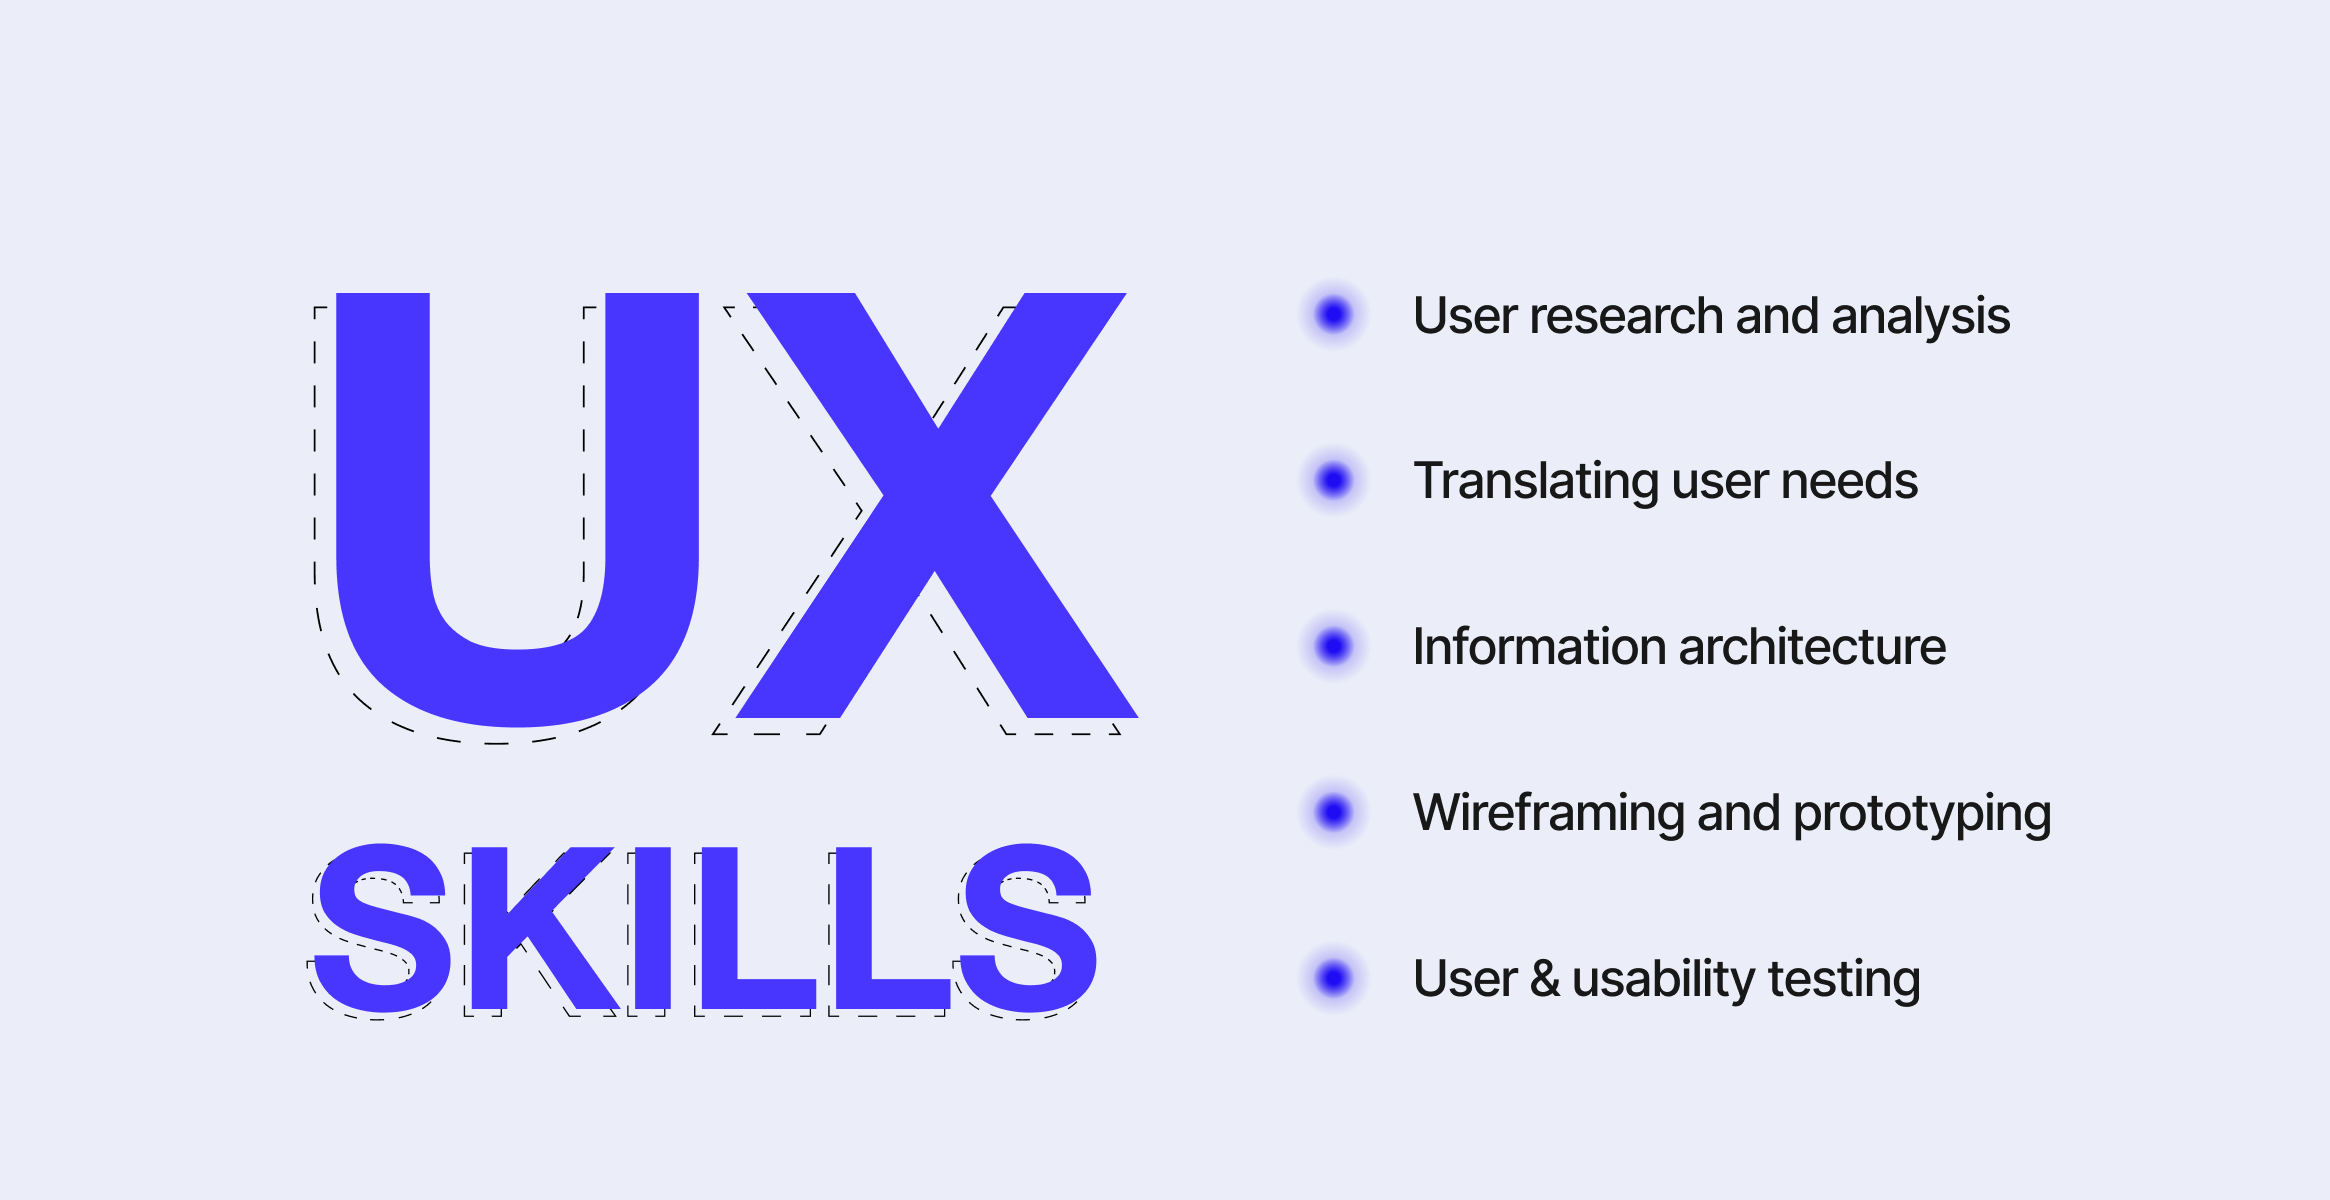 What skills are needed to work as a UX designer